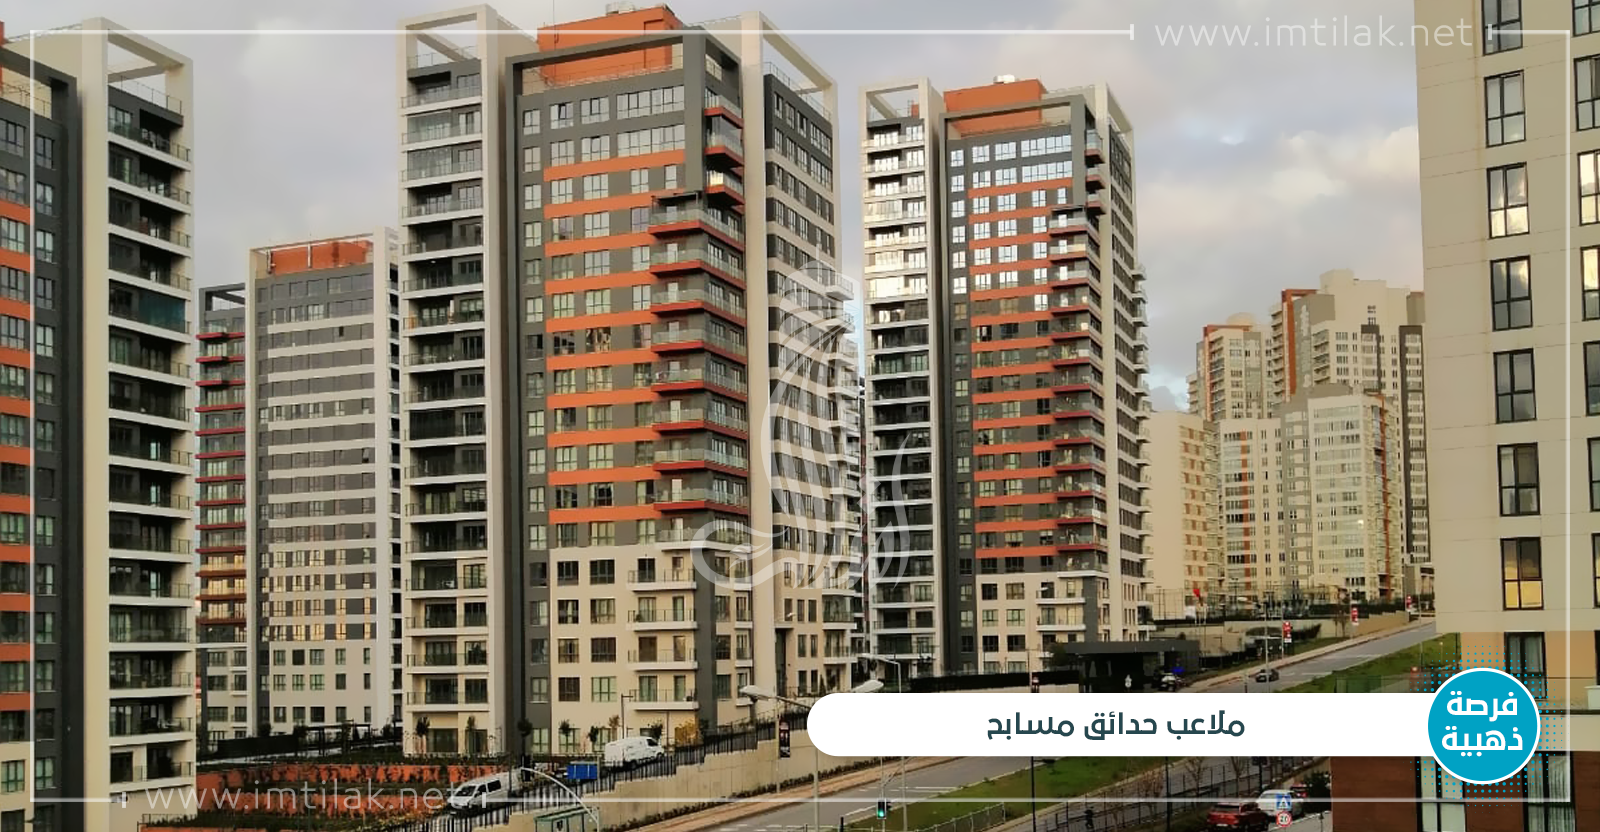 Apartments for sale in Kayasehir area IMT - 233